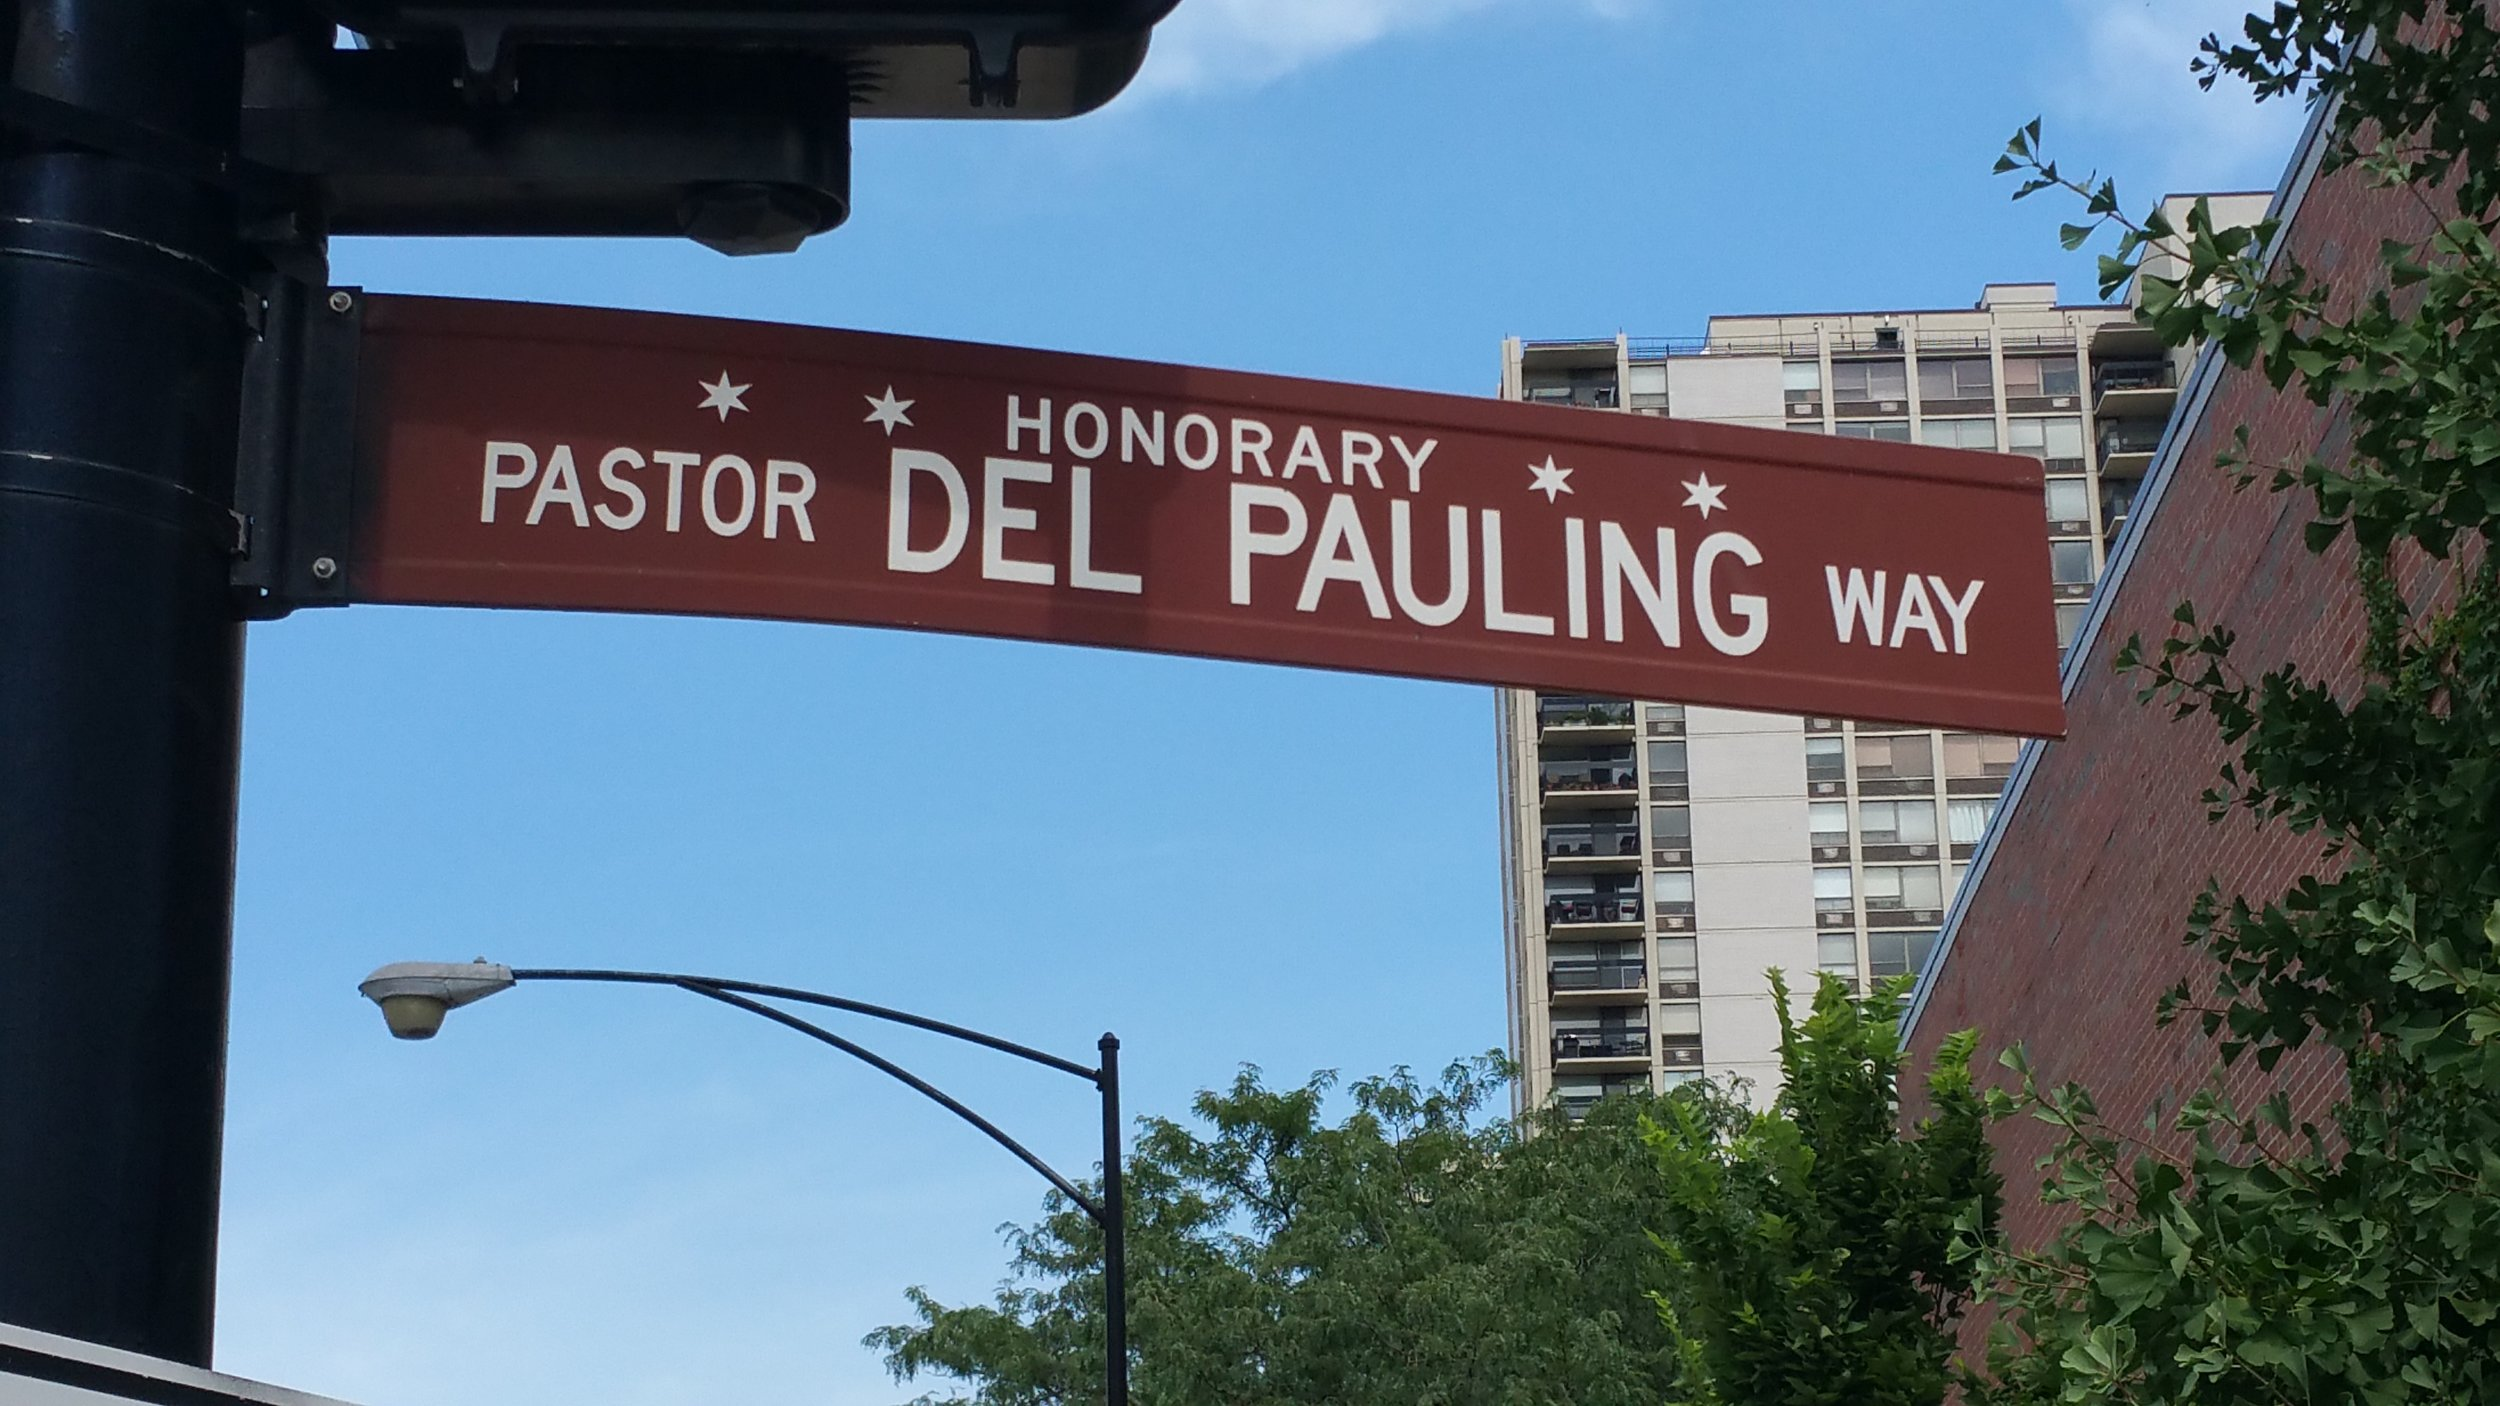 Del Pauling - Pastor of First Evangelical Lutheran Church - Honorary Chicago